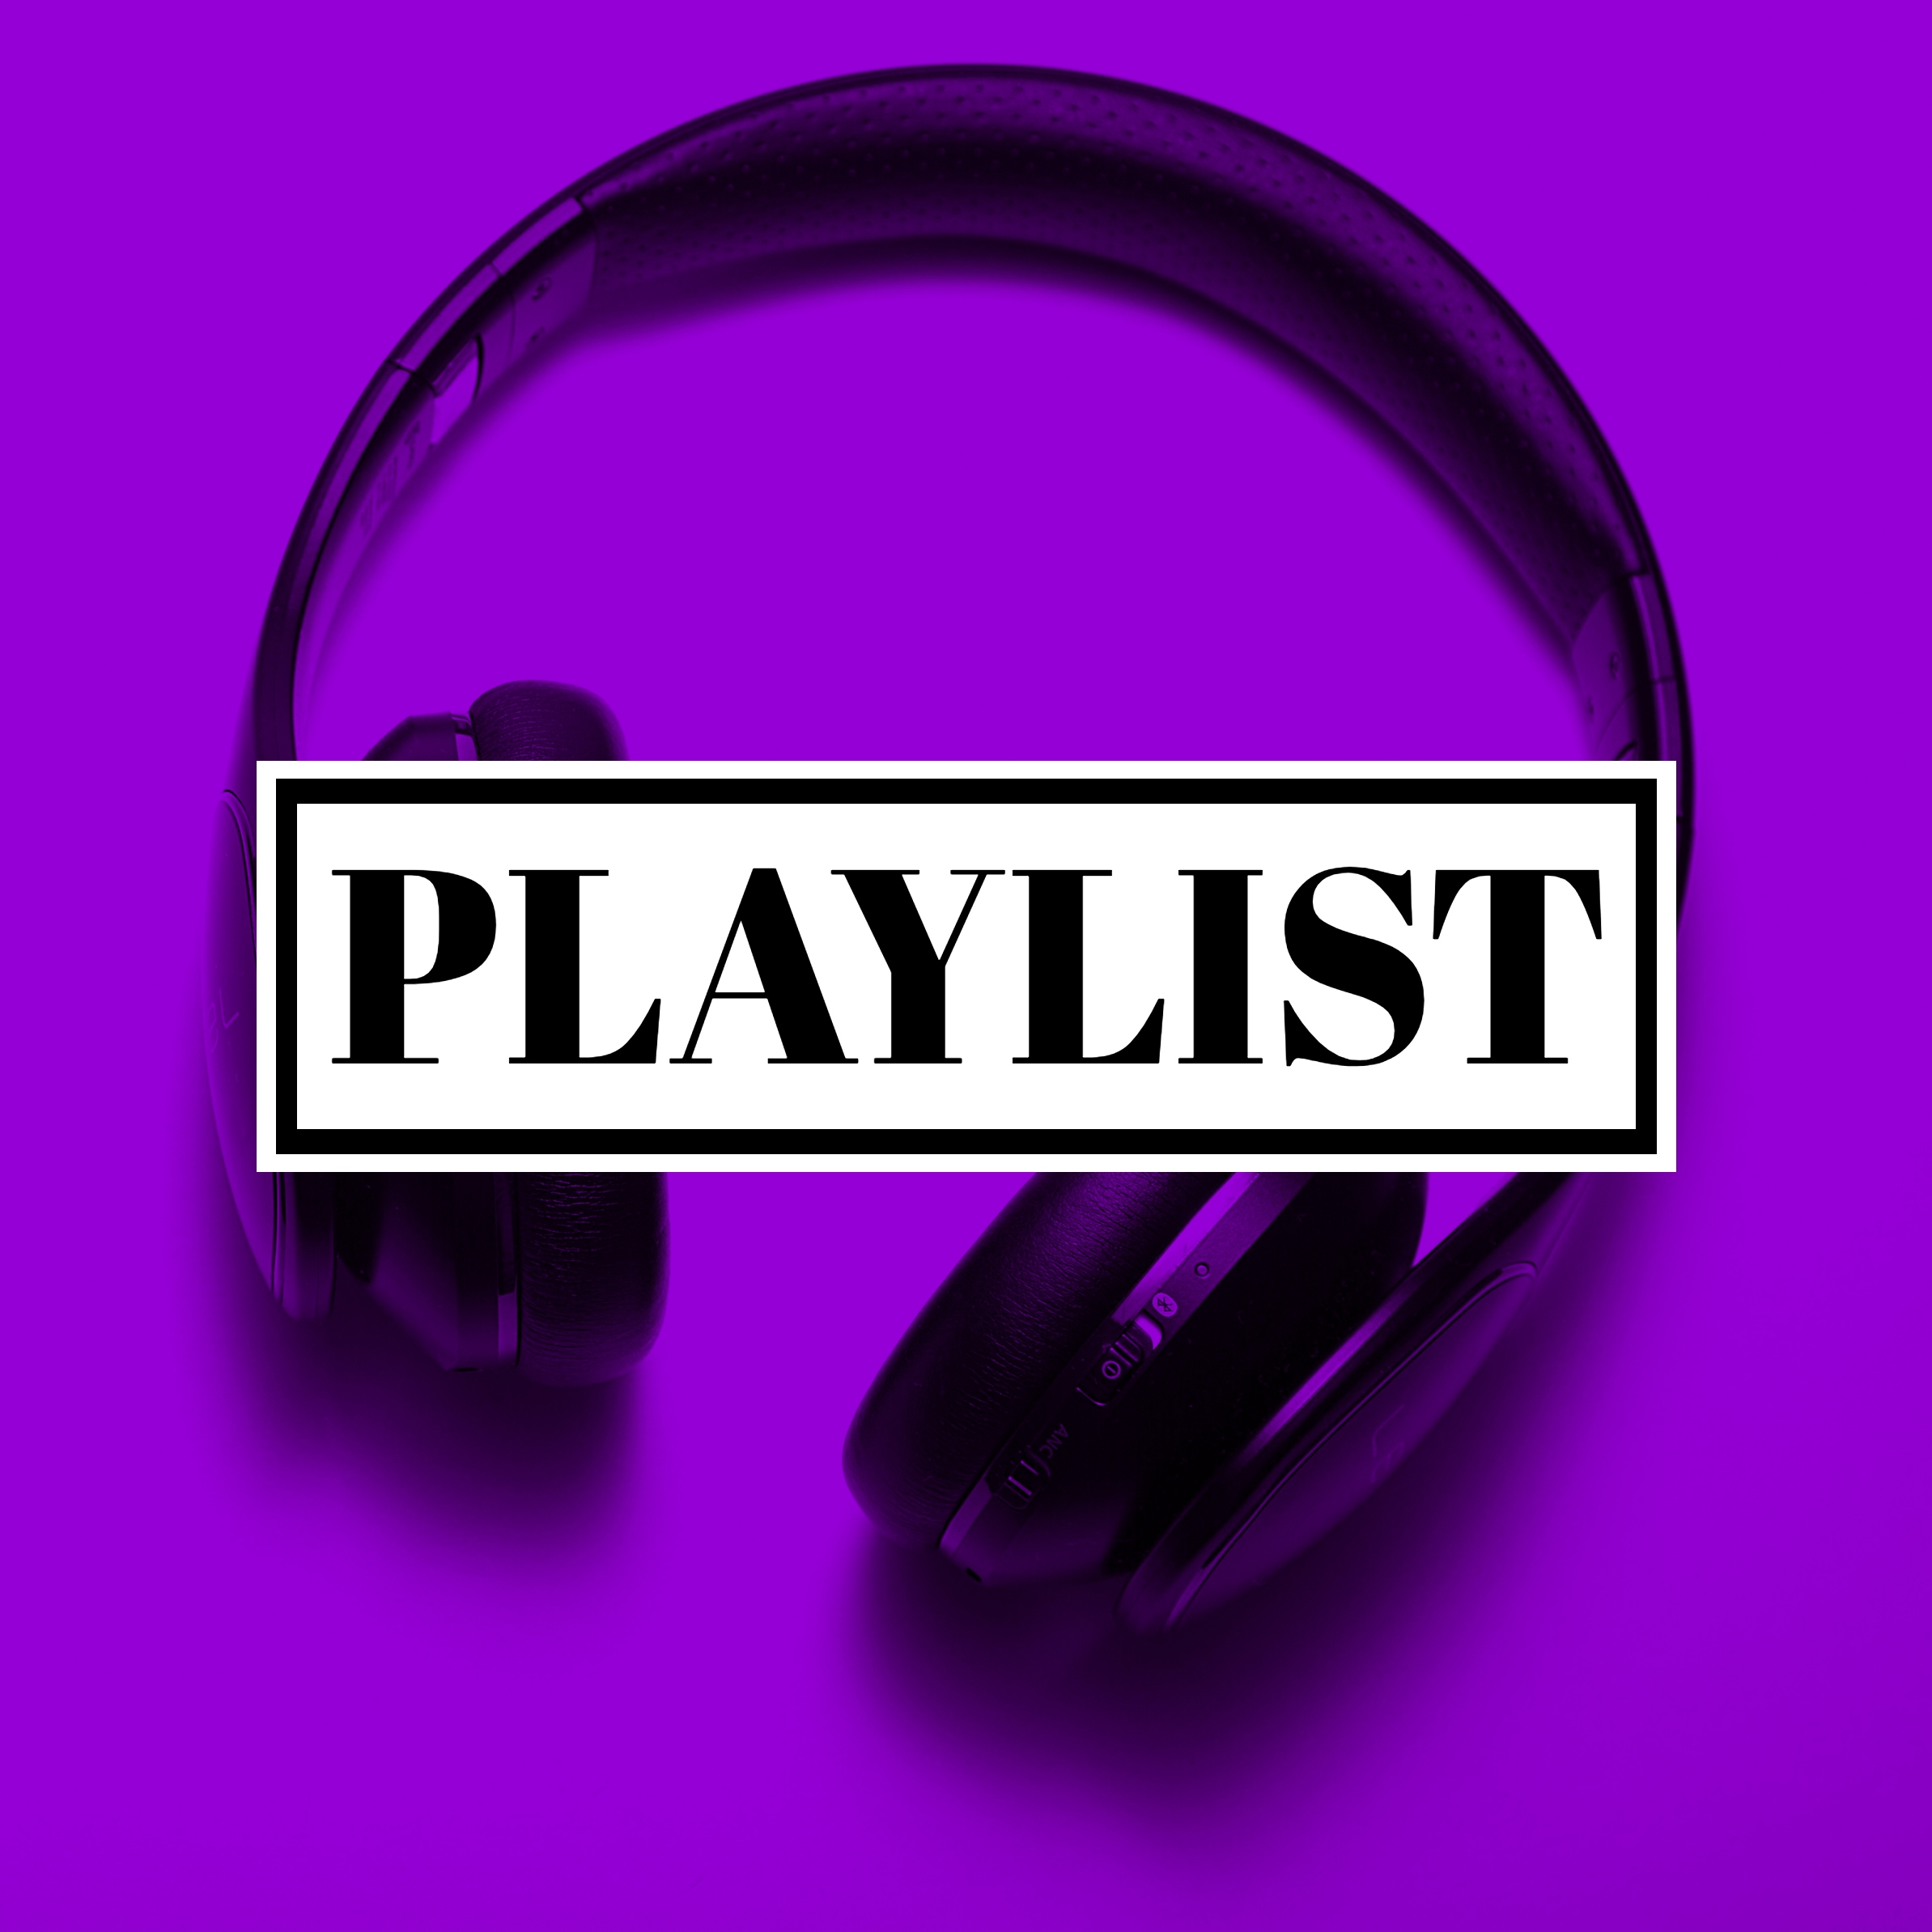 Add your music to my playlist with 1550+ active users